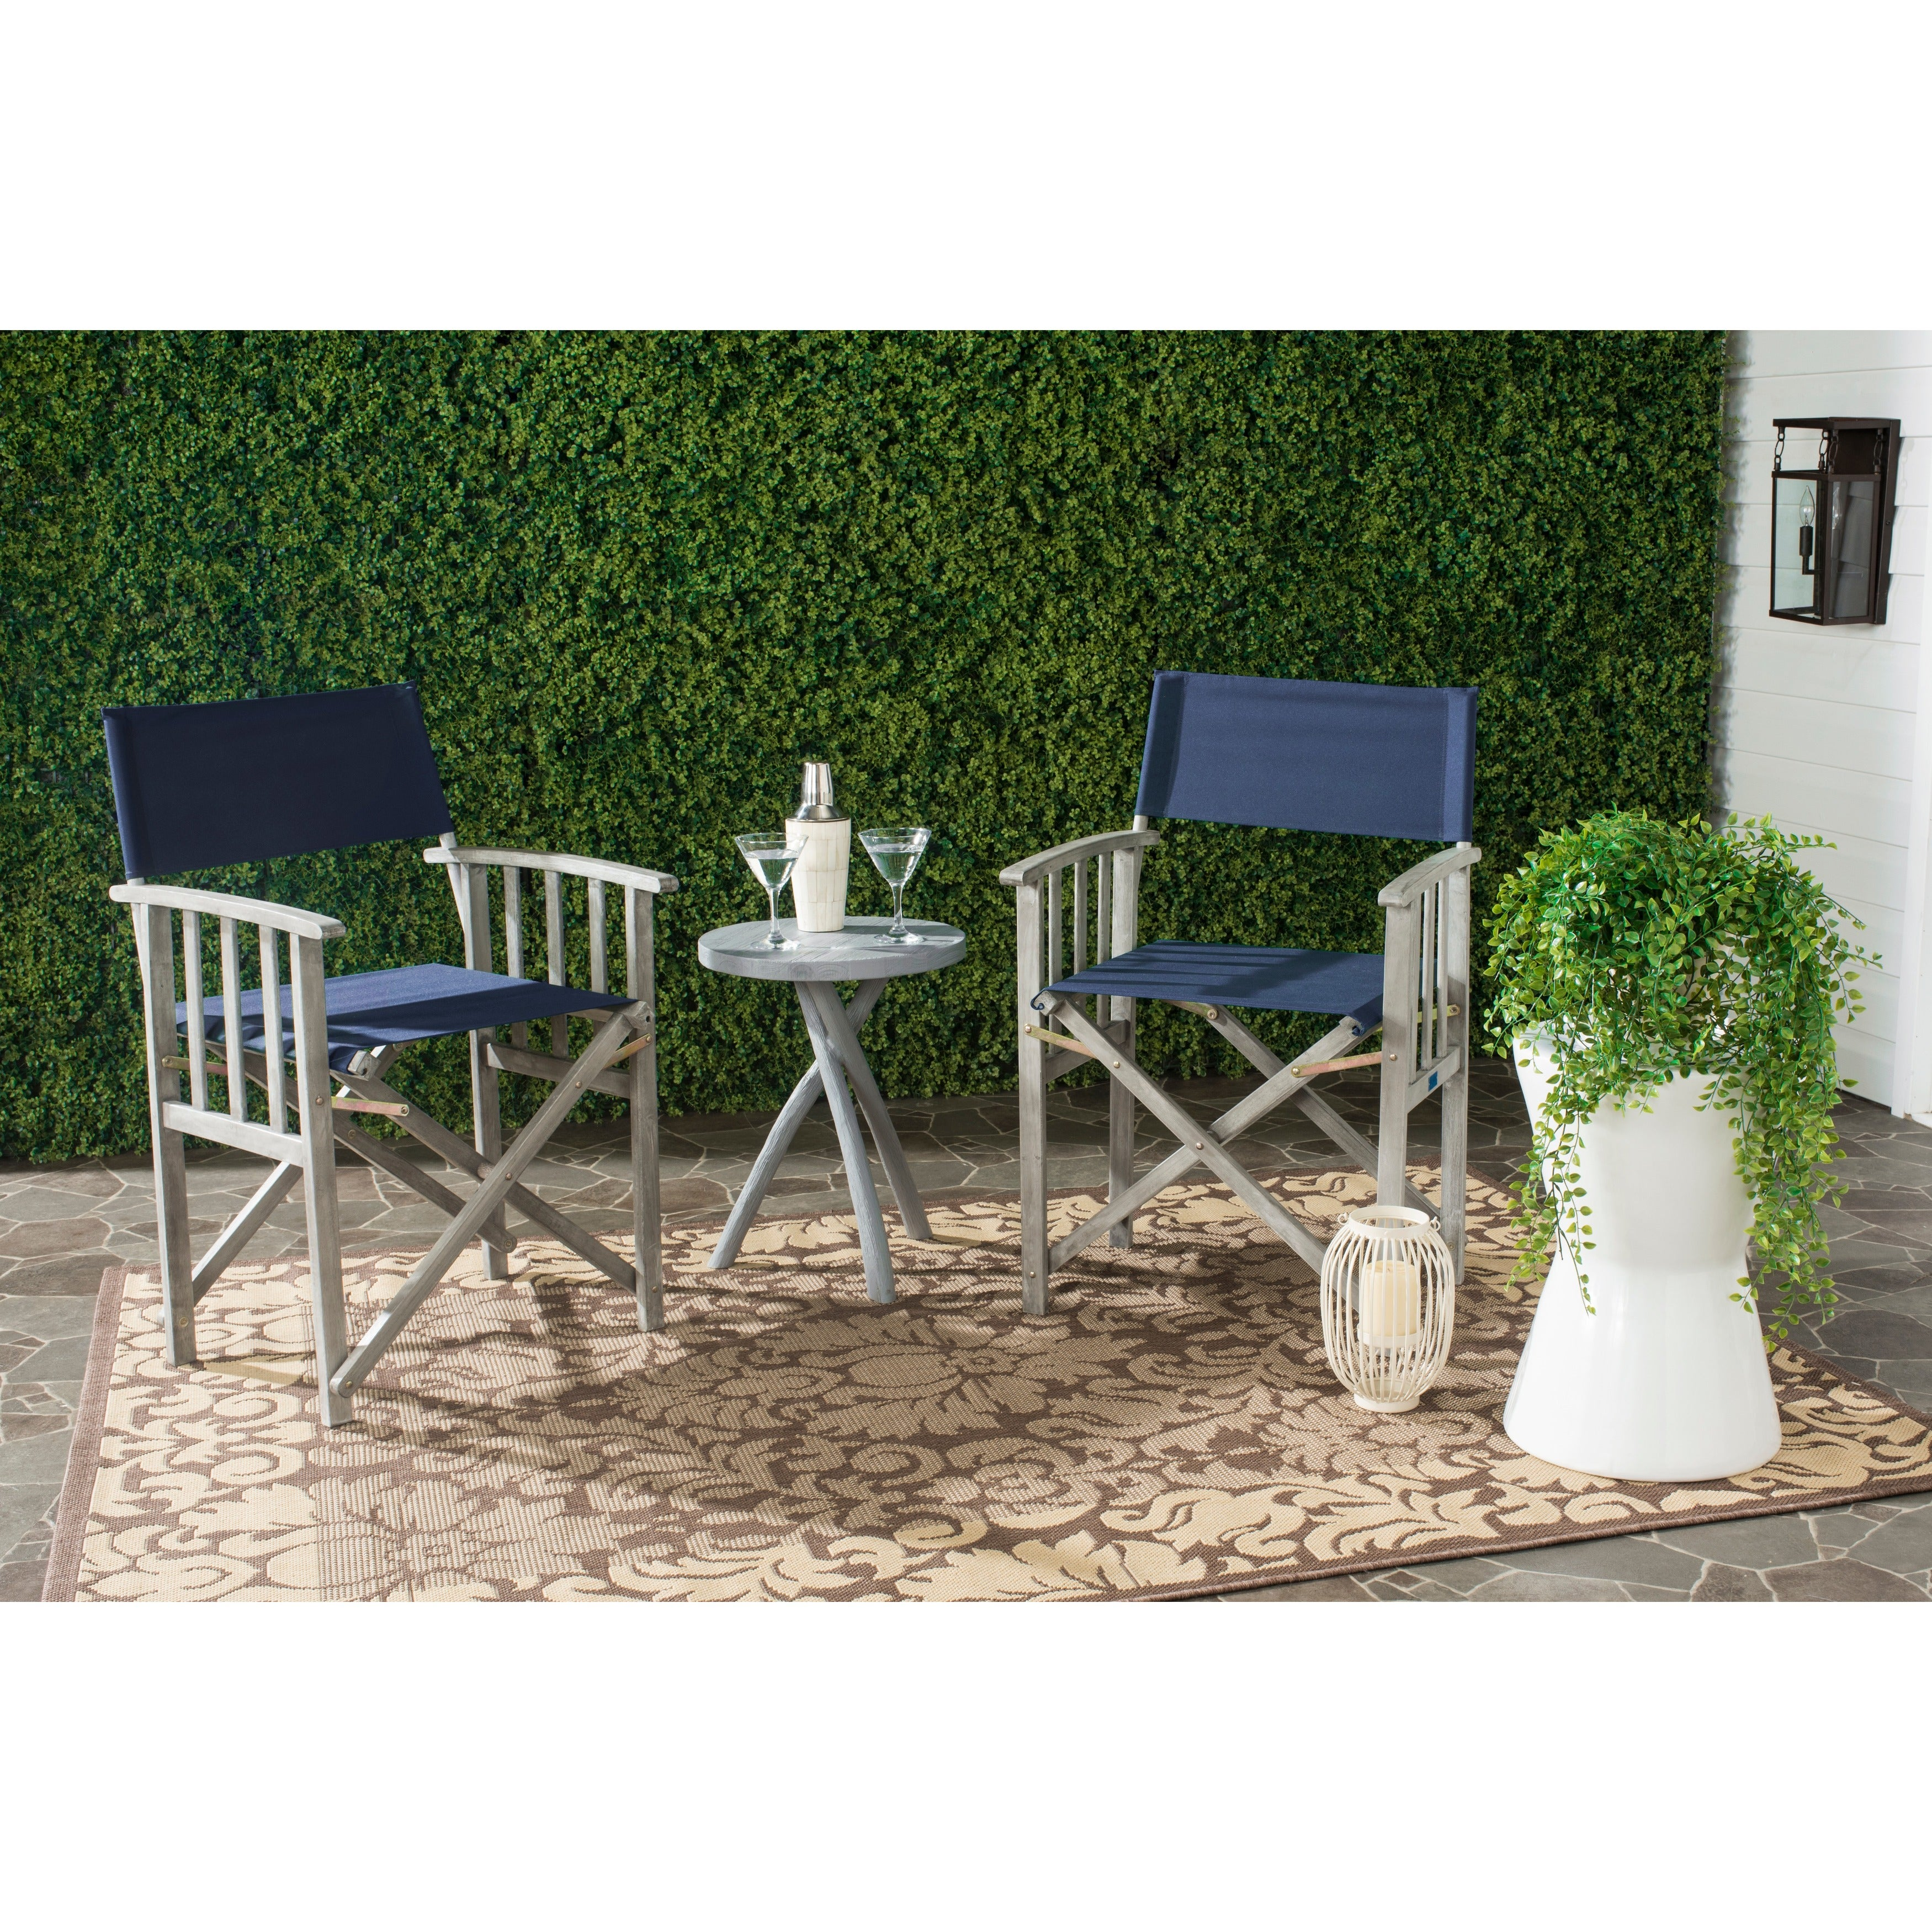 outdoor director chair. Safavieh Laguna Outdoor Navy Director Chair (Set Of 2) - Free Shipping Today Overstock 18323933 H